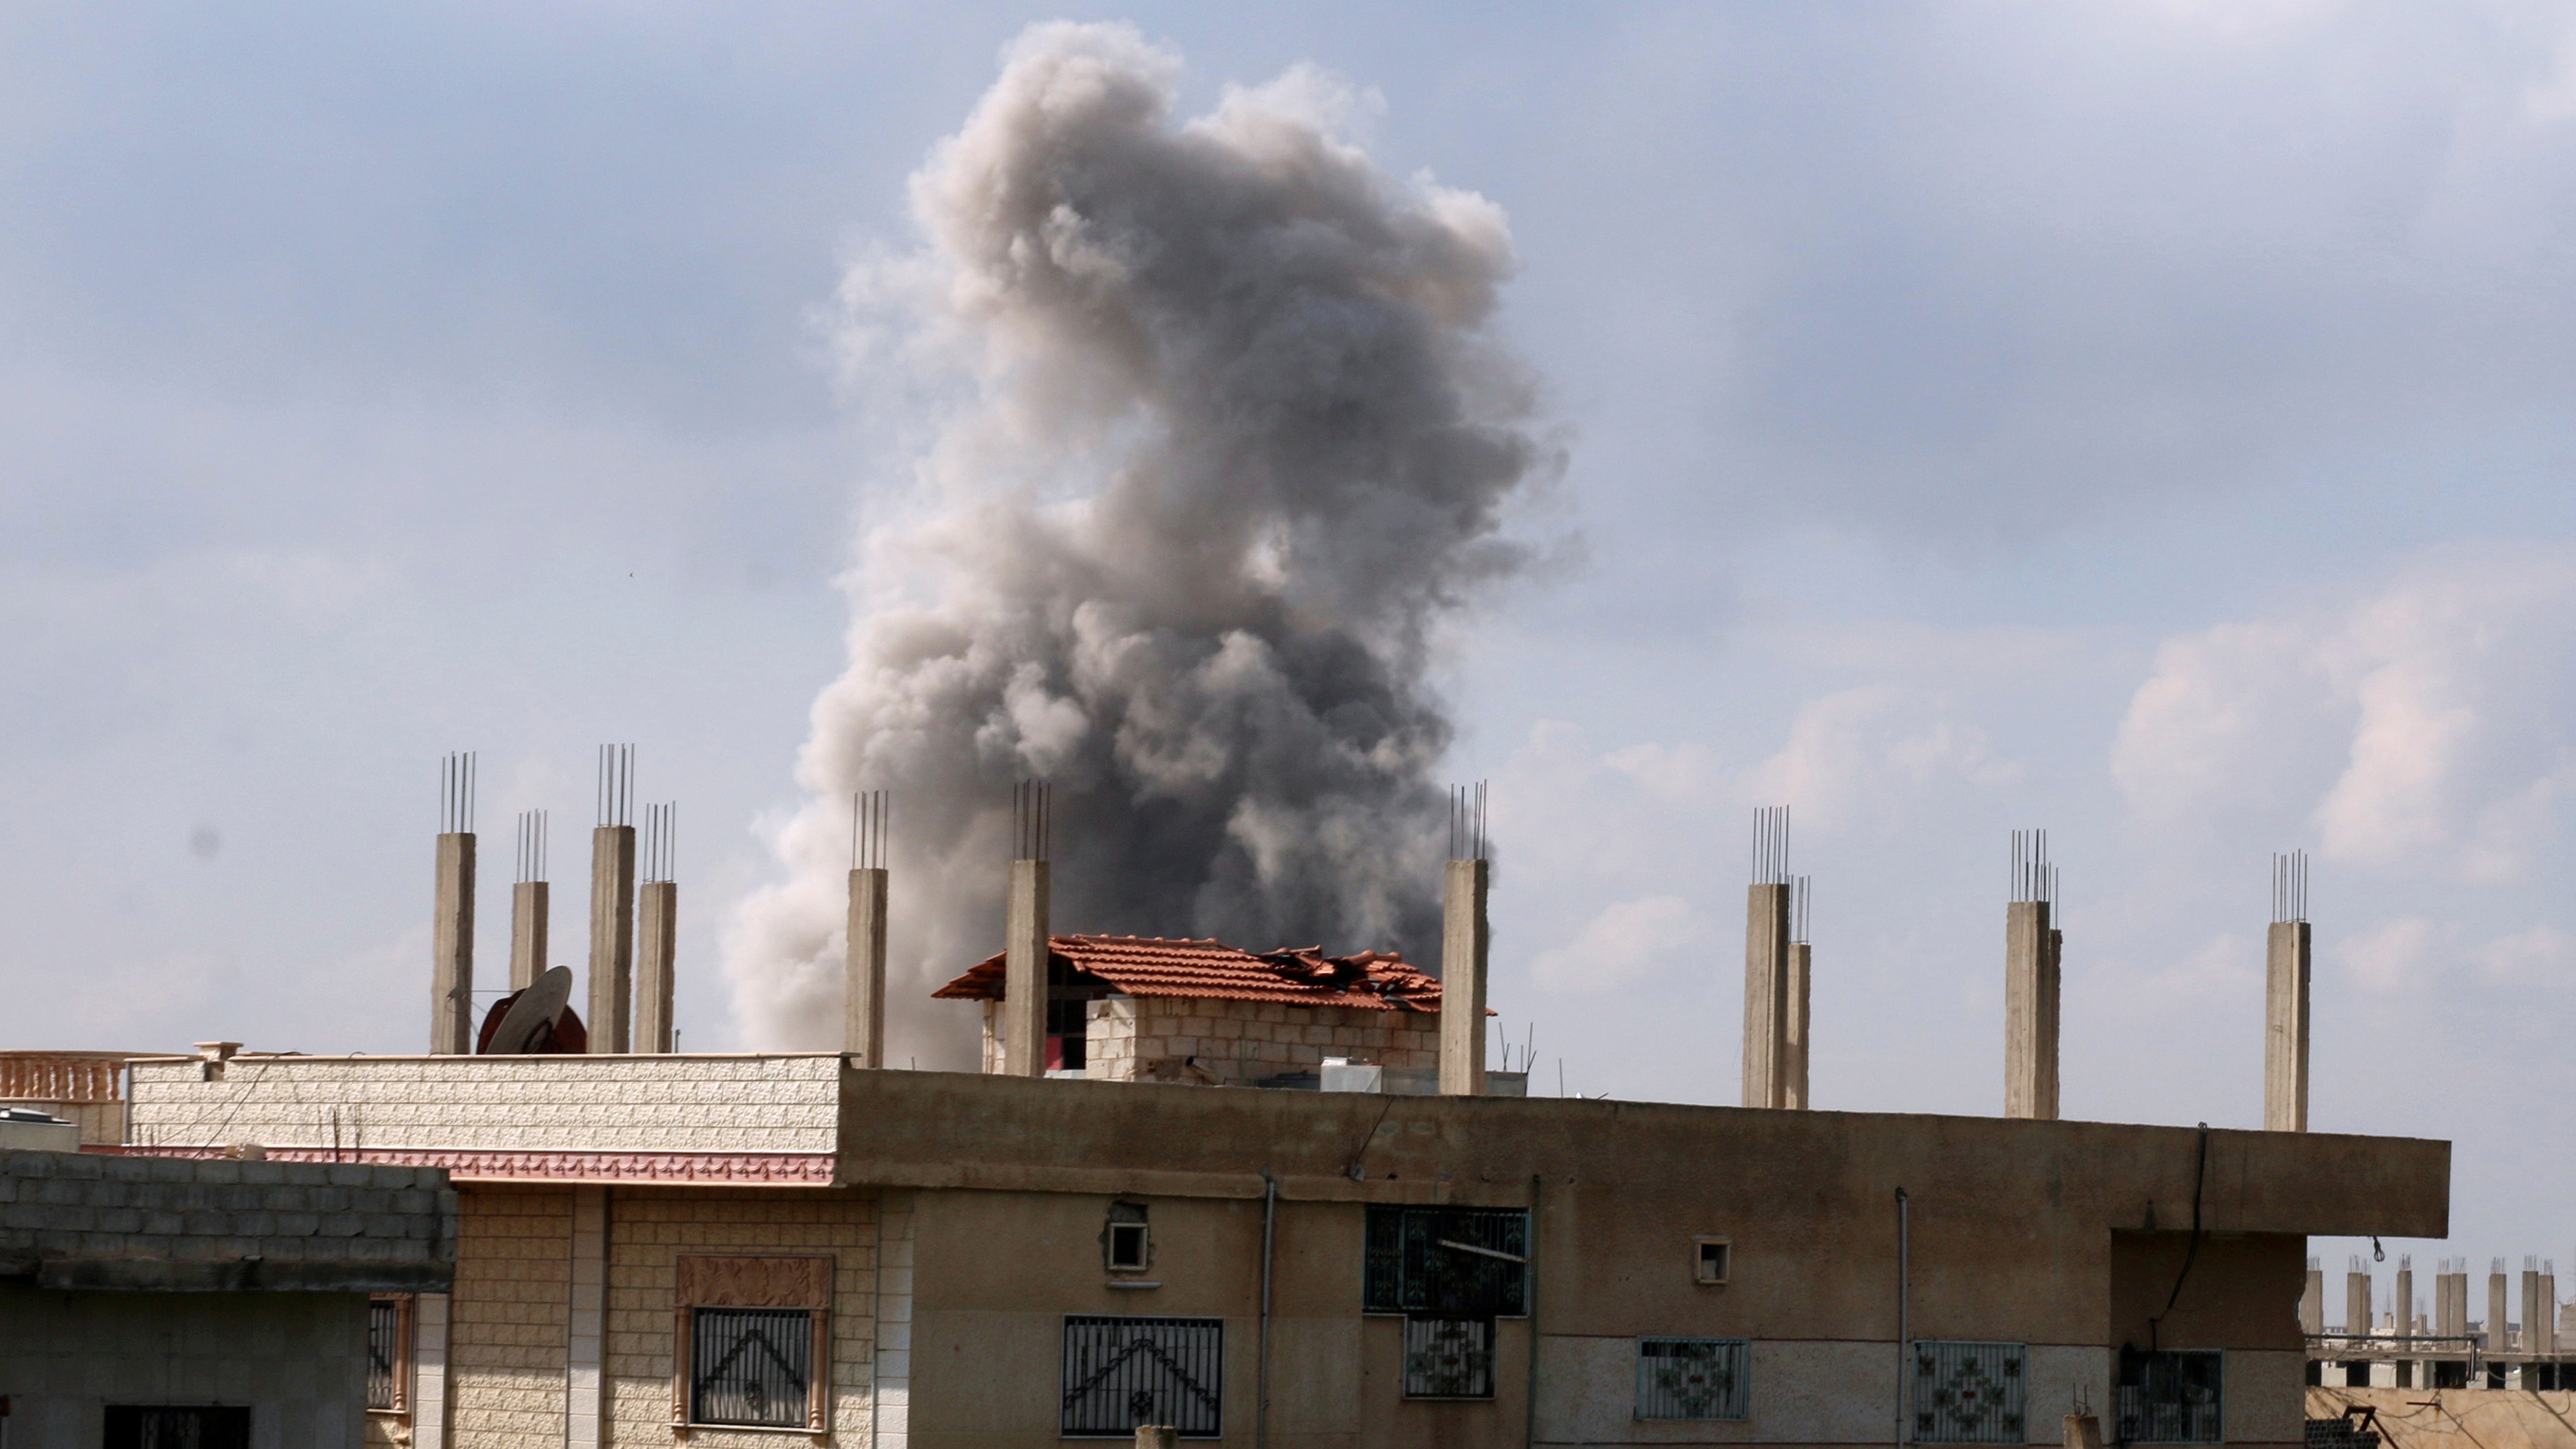 Smoke rises after an airstrike on a rebel-held area, April 7th 2017